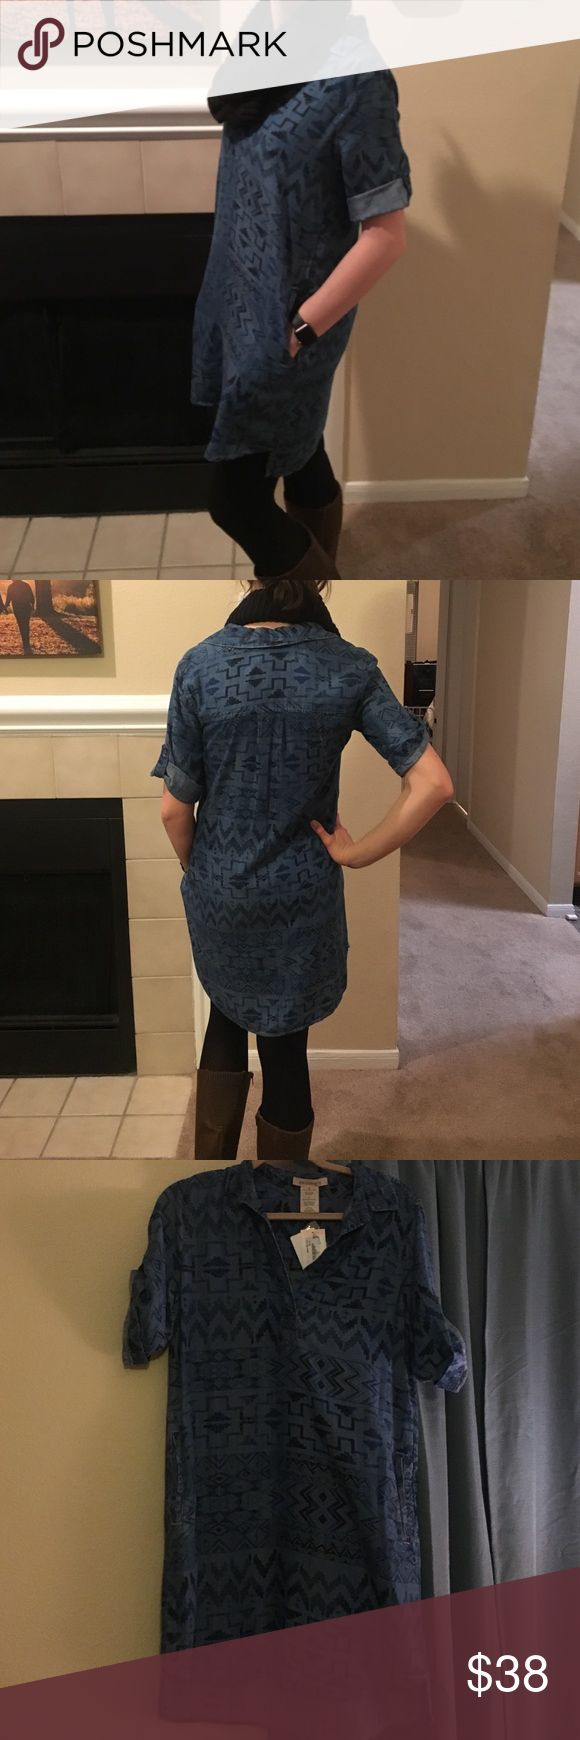 "*New* Philosophy Denim Style Dress This is a fun dress with an aztec-style pattern that has a denim look but is super soft and feminine. The pockets make it so cute and stylish over leggings with boots ♥️ the website describes it as a shirtdress but I am 5'10"" and it works as a dress on me! Philosophy Dresses"